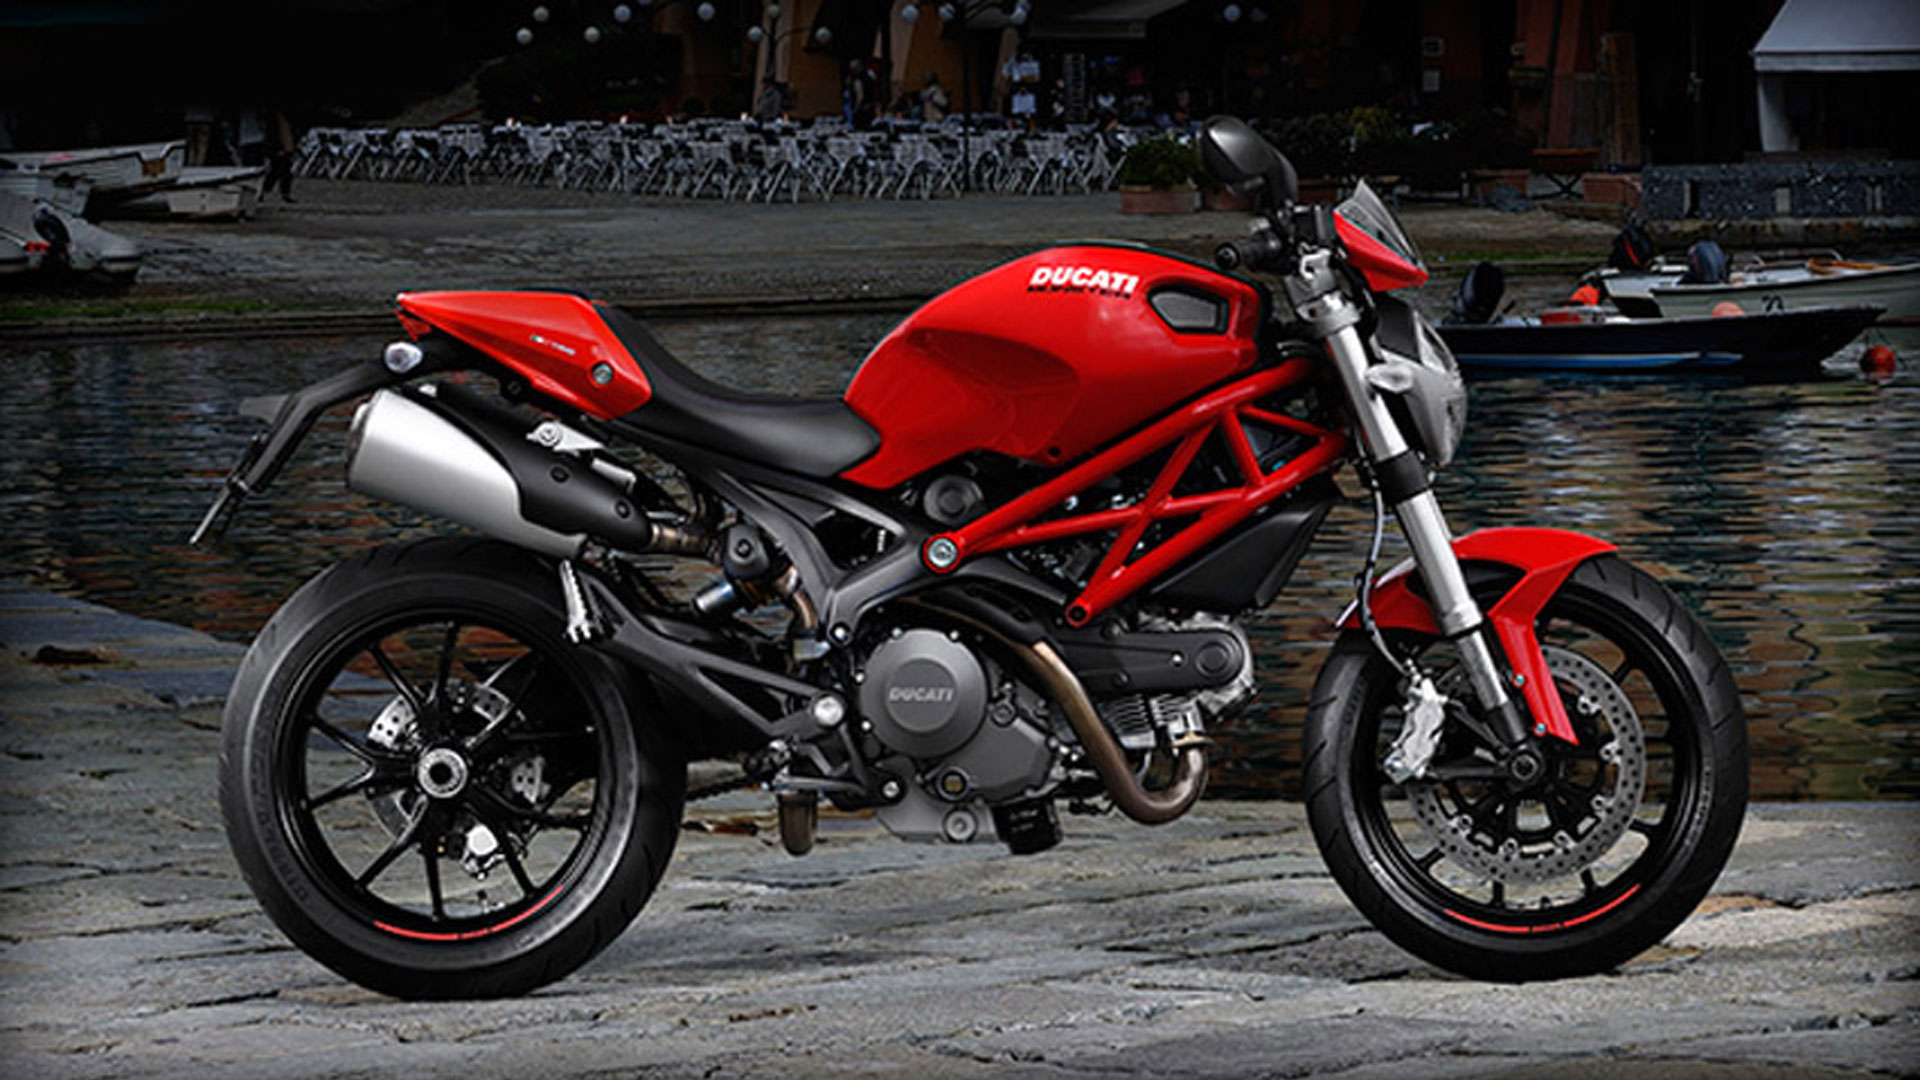 Ducati Monster 796 Corse Stripe 2015 images #146209